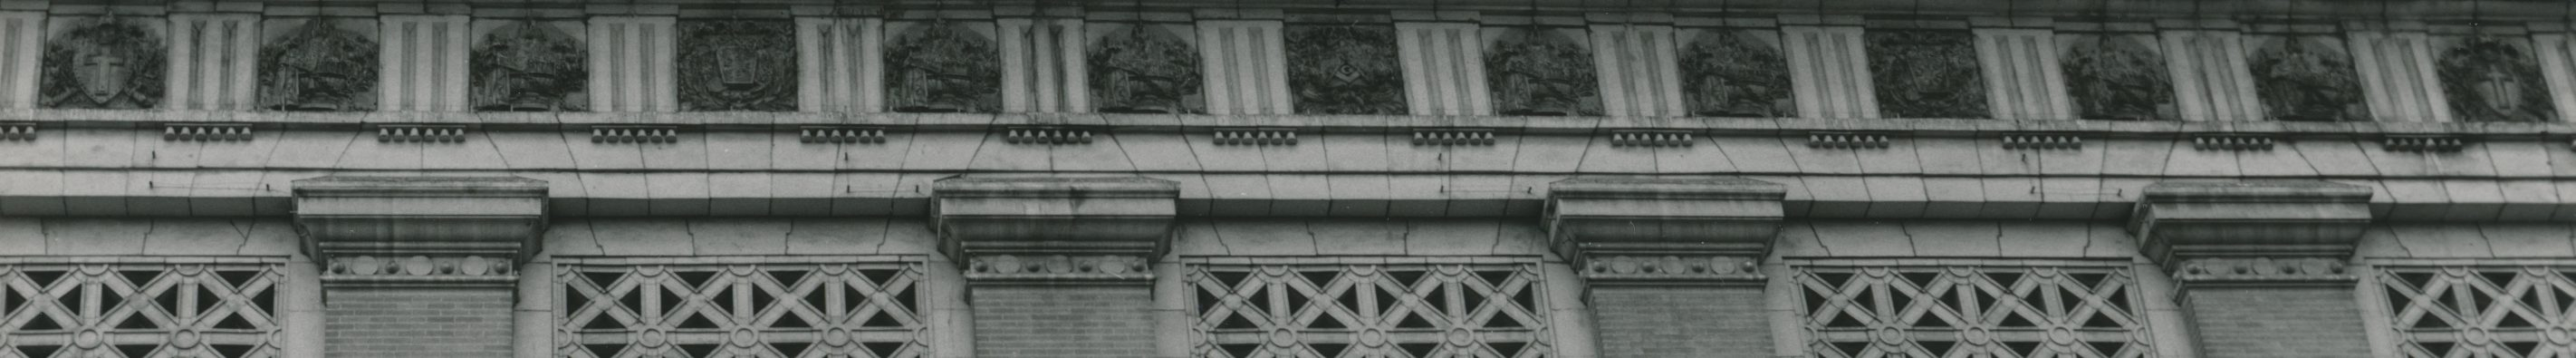 Black and white photograph of the museum exterior with a view of the upper half of the facade.